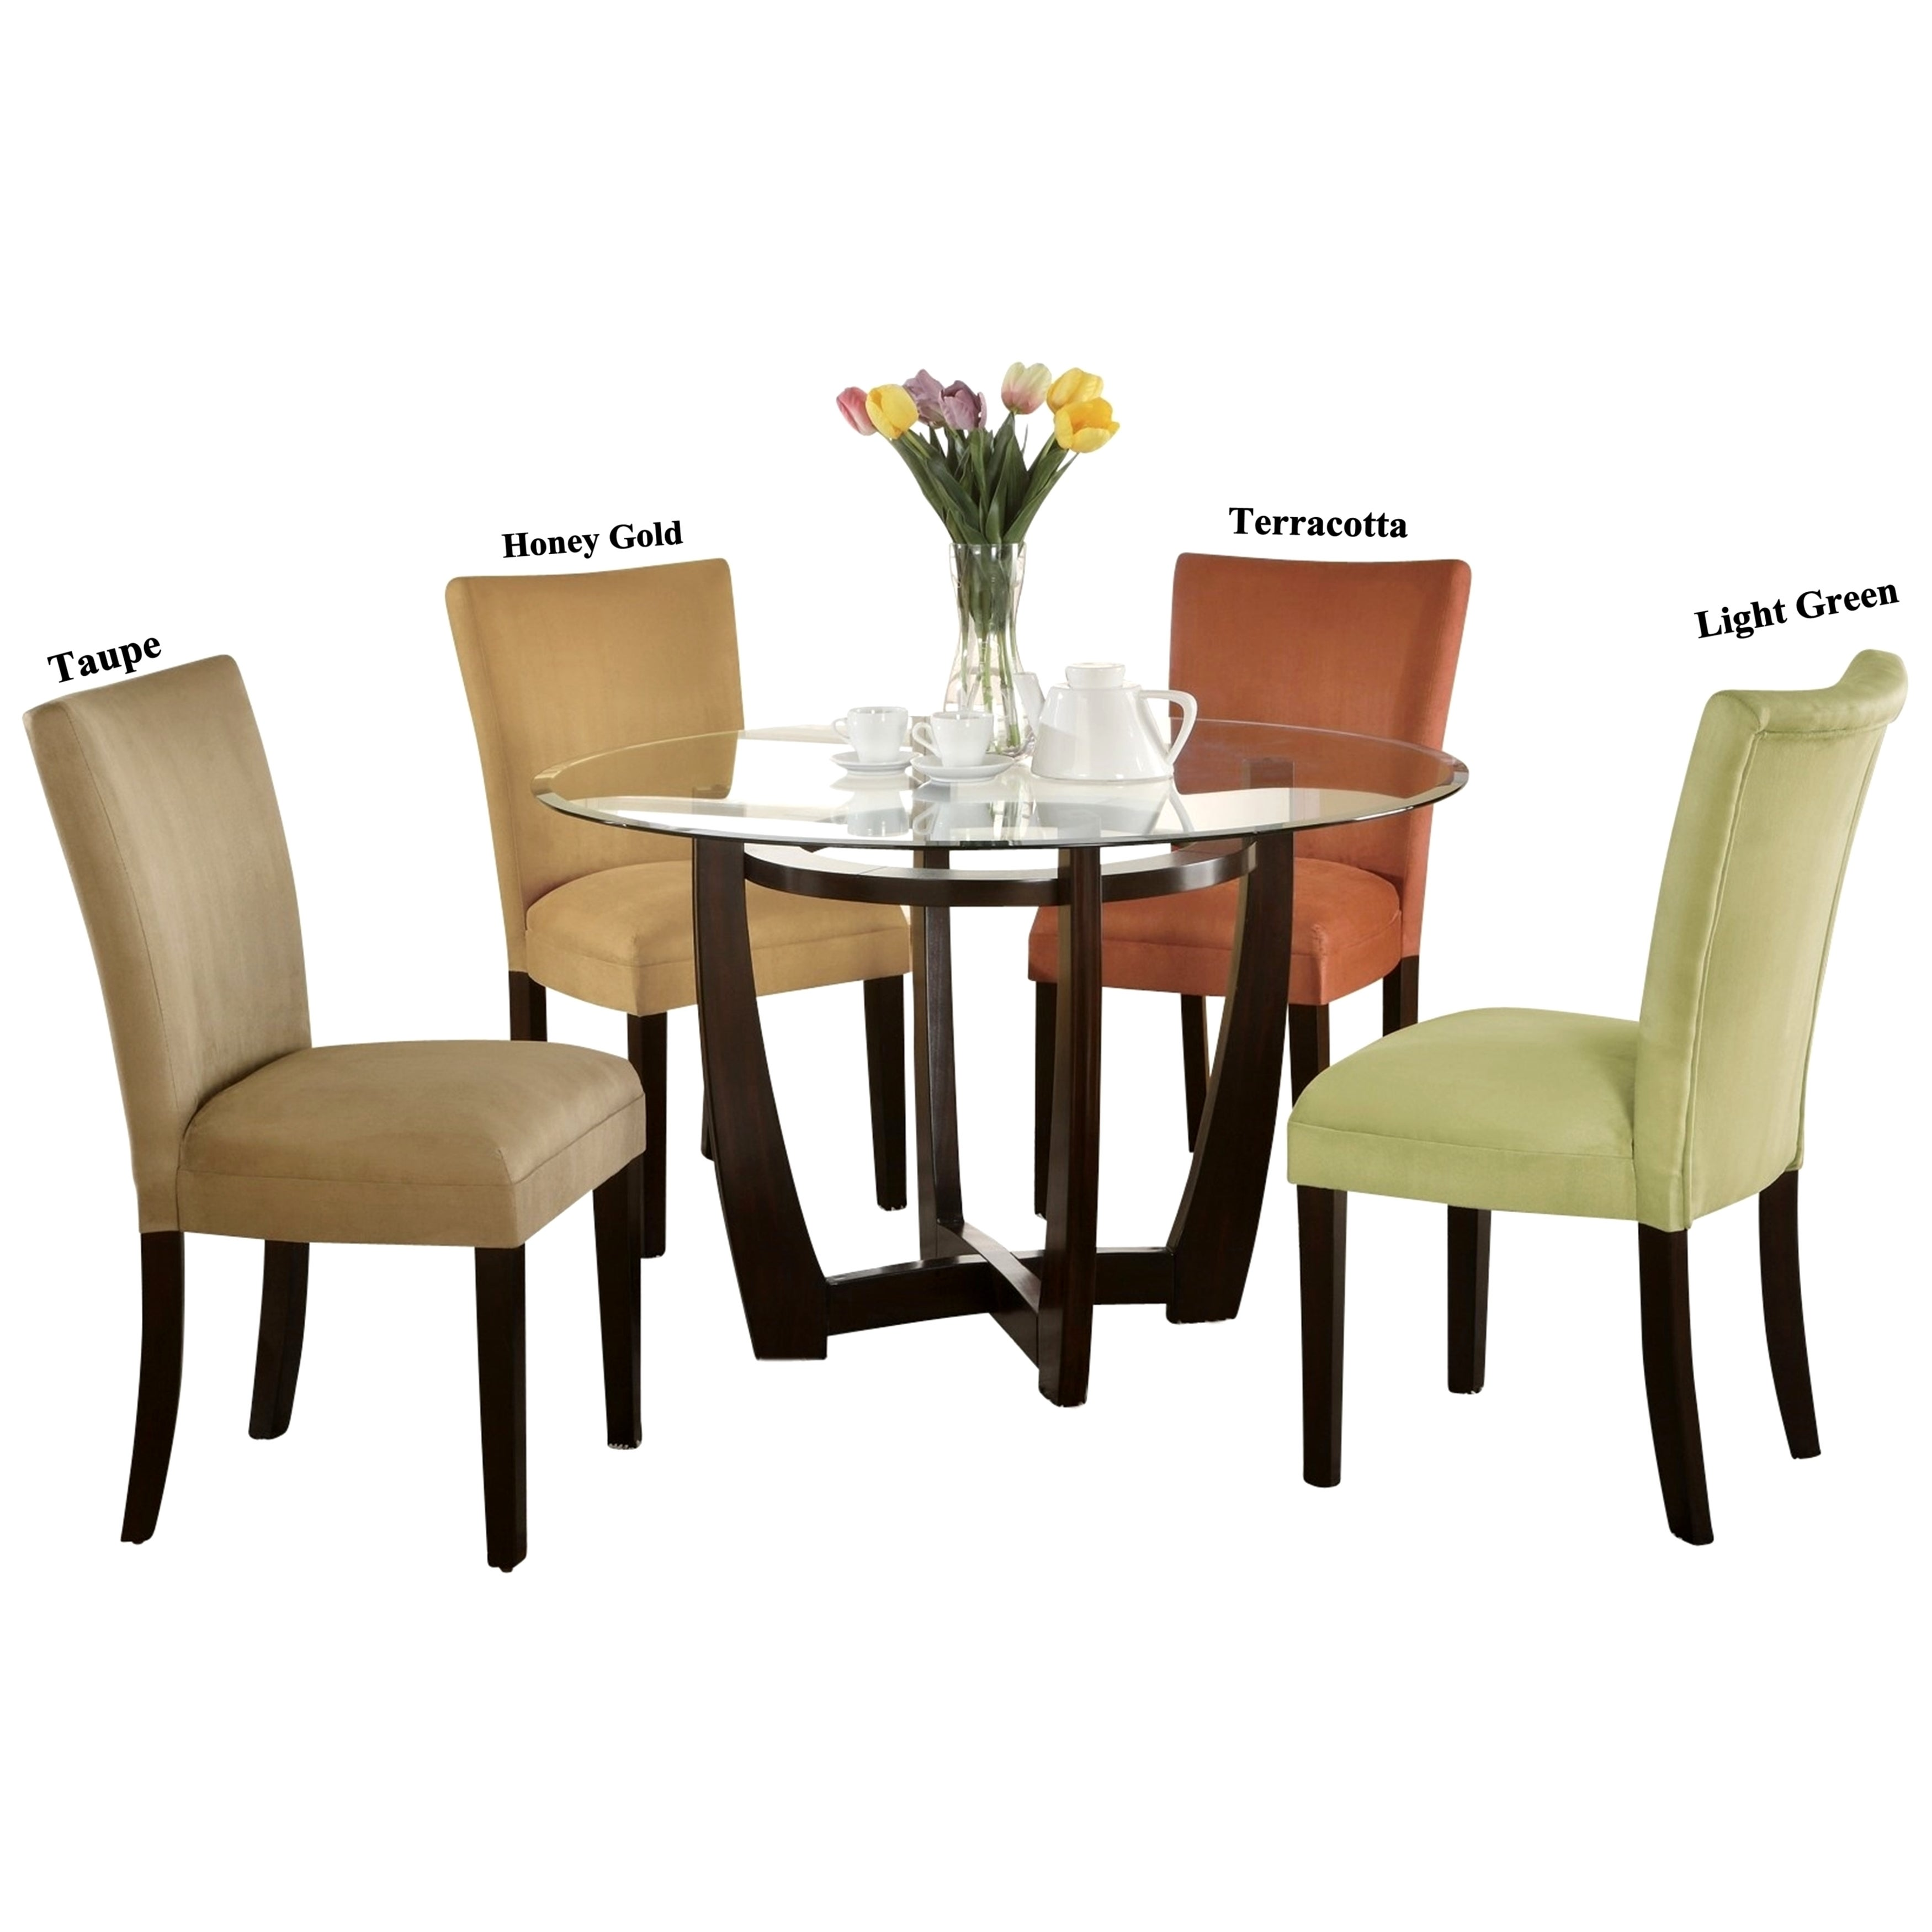 5 Piece Round Dining Set: Mirage Round Glass Top Table / Microfiber Parson Chairs 5